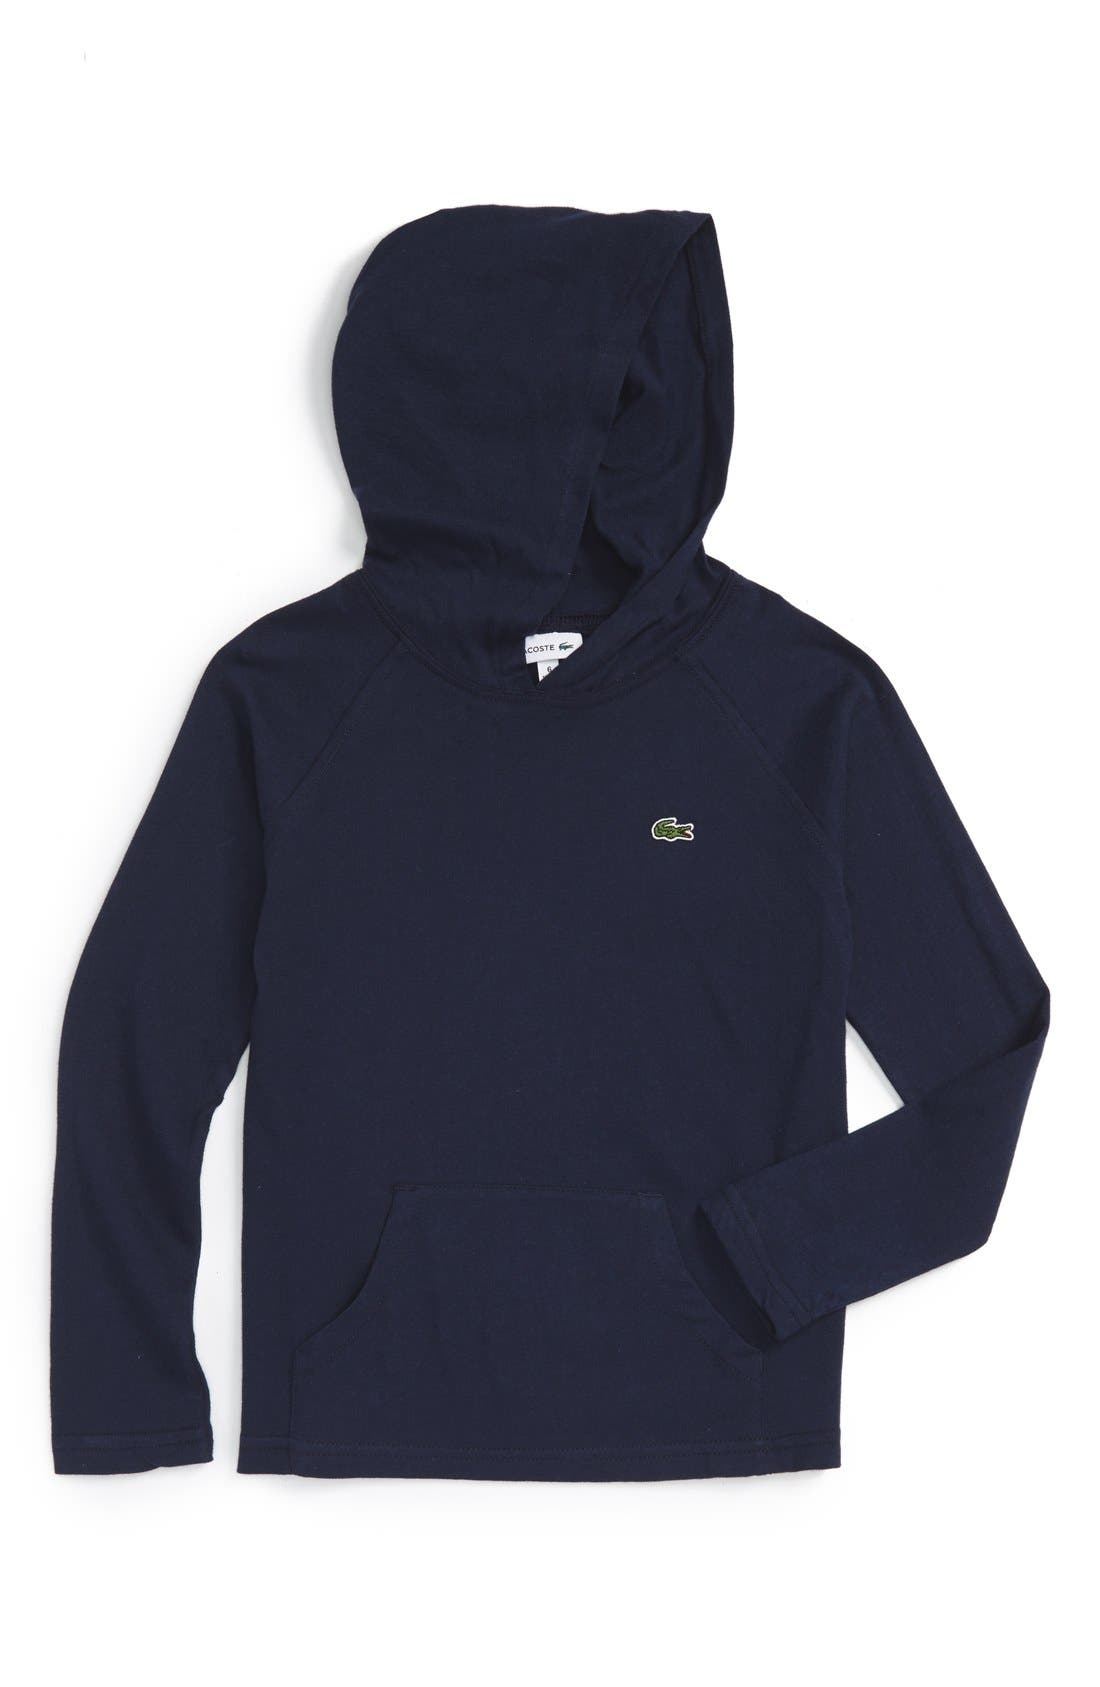 Main Image - Lacoste Hooded Jersey T-Shirt (Big Boys)